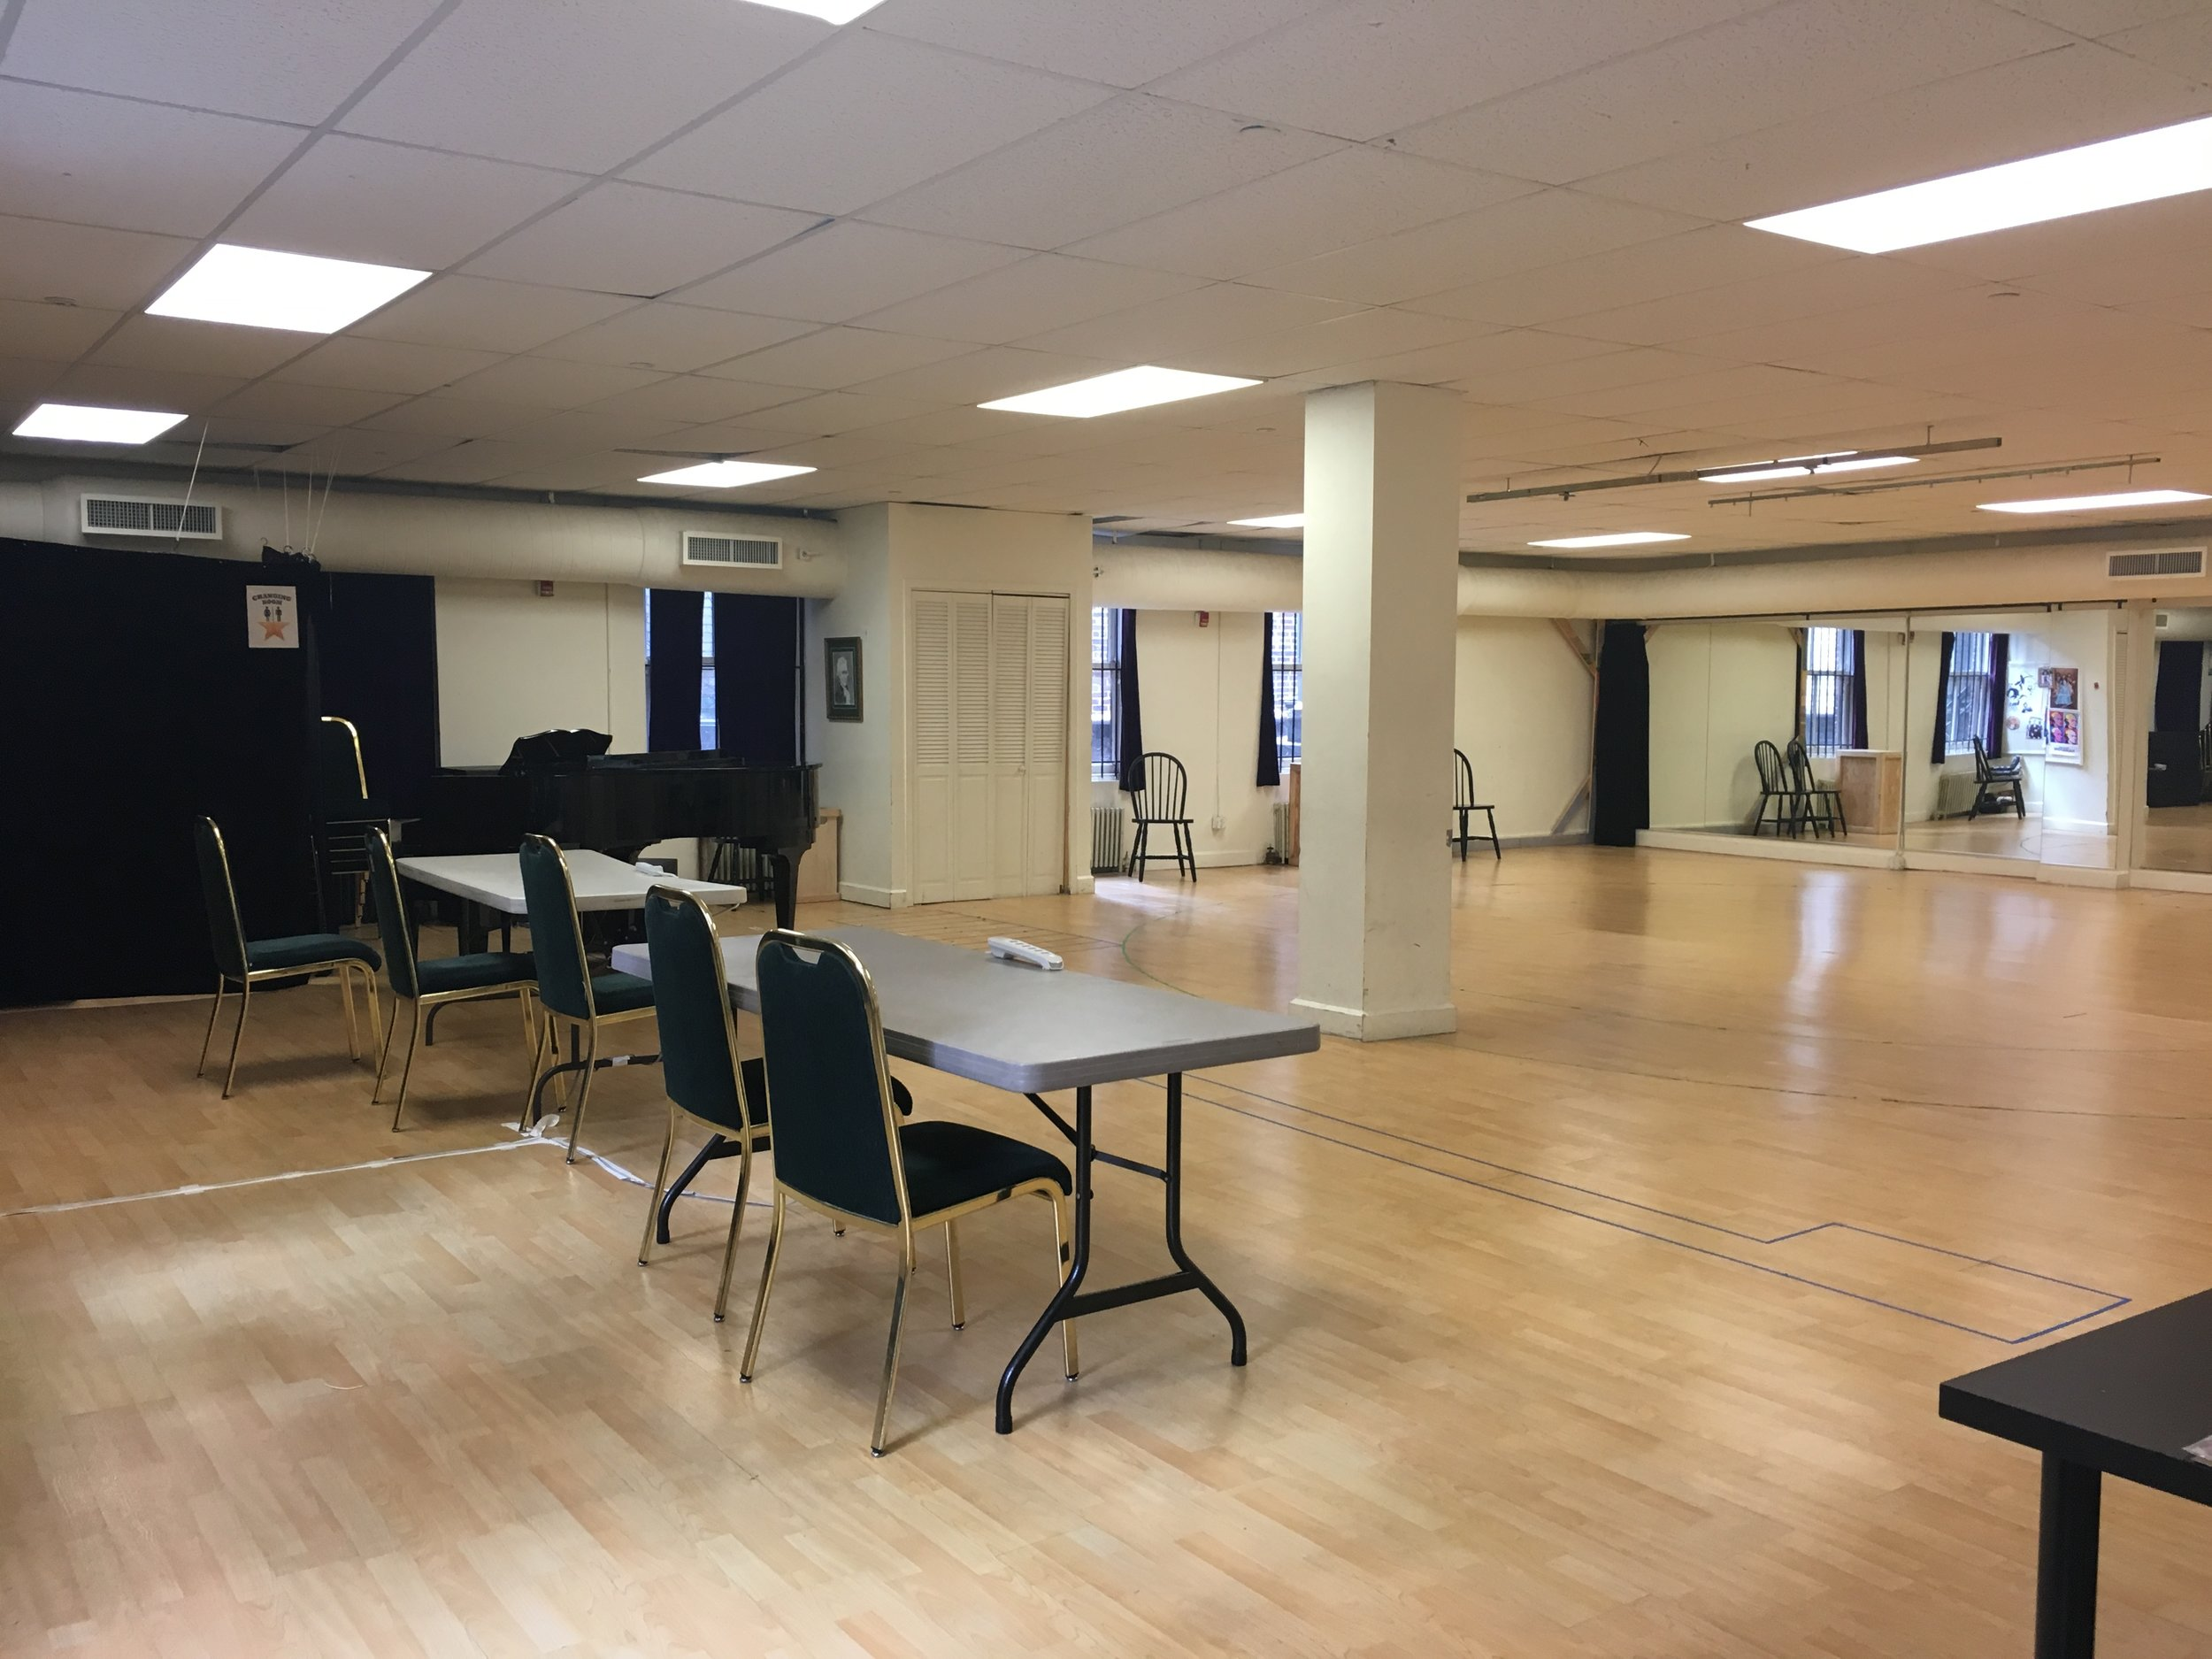 4th Floor Rehearsal Space -  After